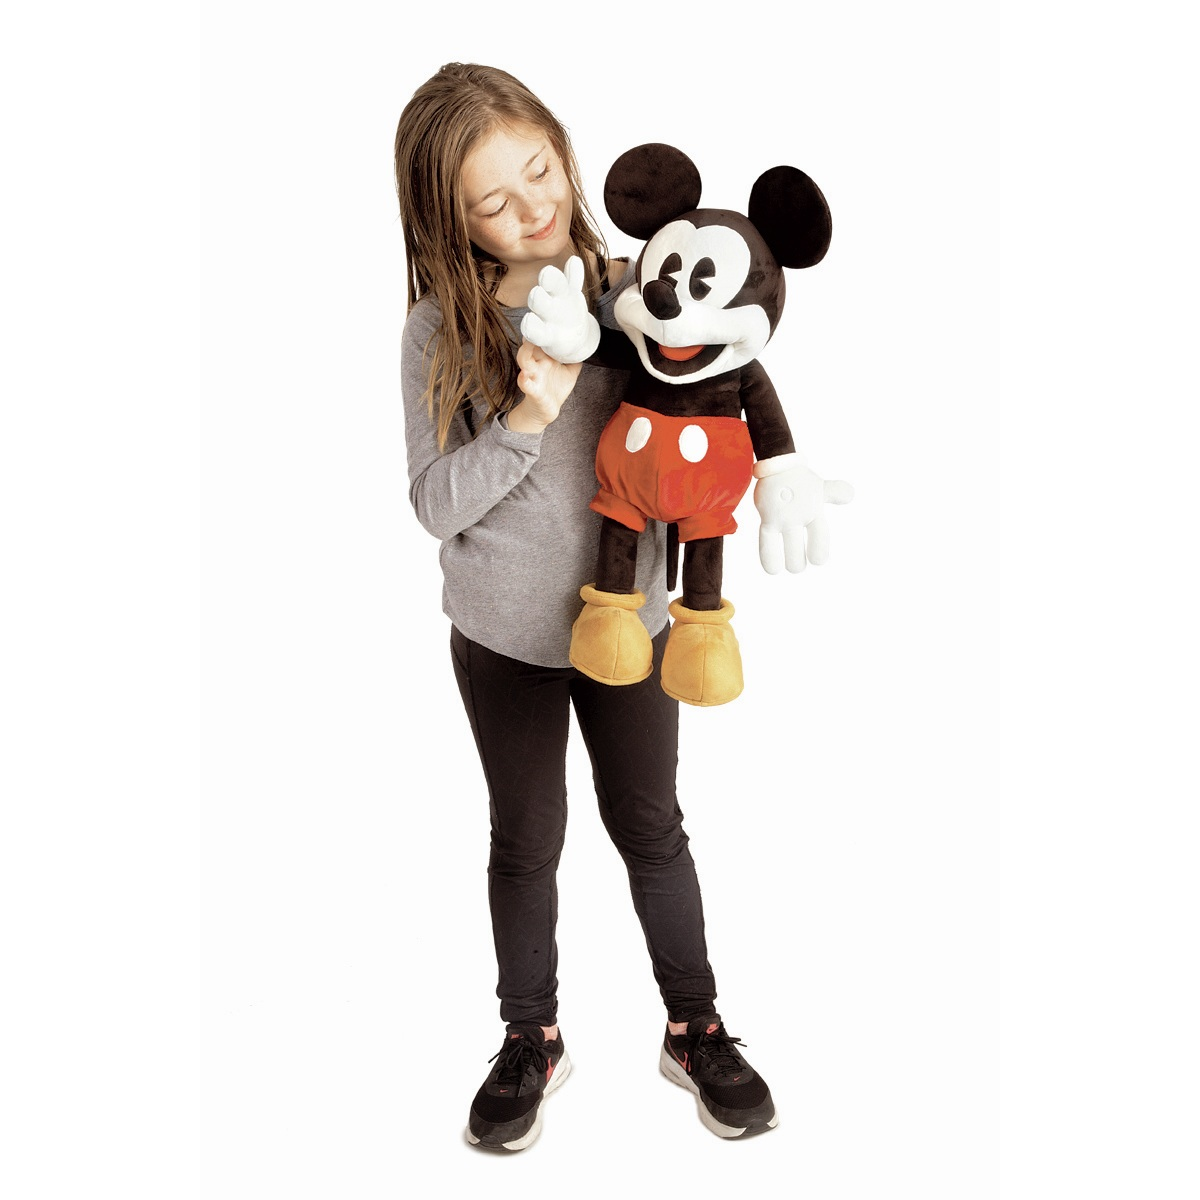 Disney Mickey Mouse Hand Puppet by Folkmanis Puppets